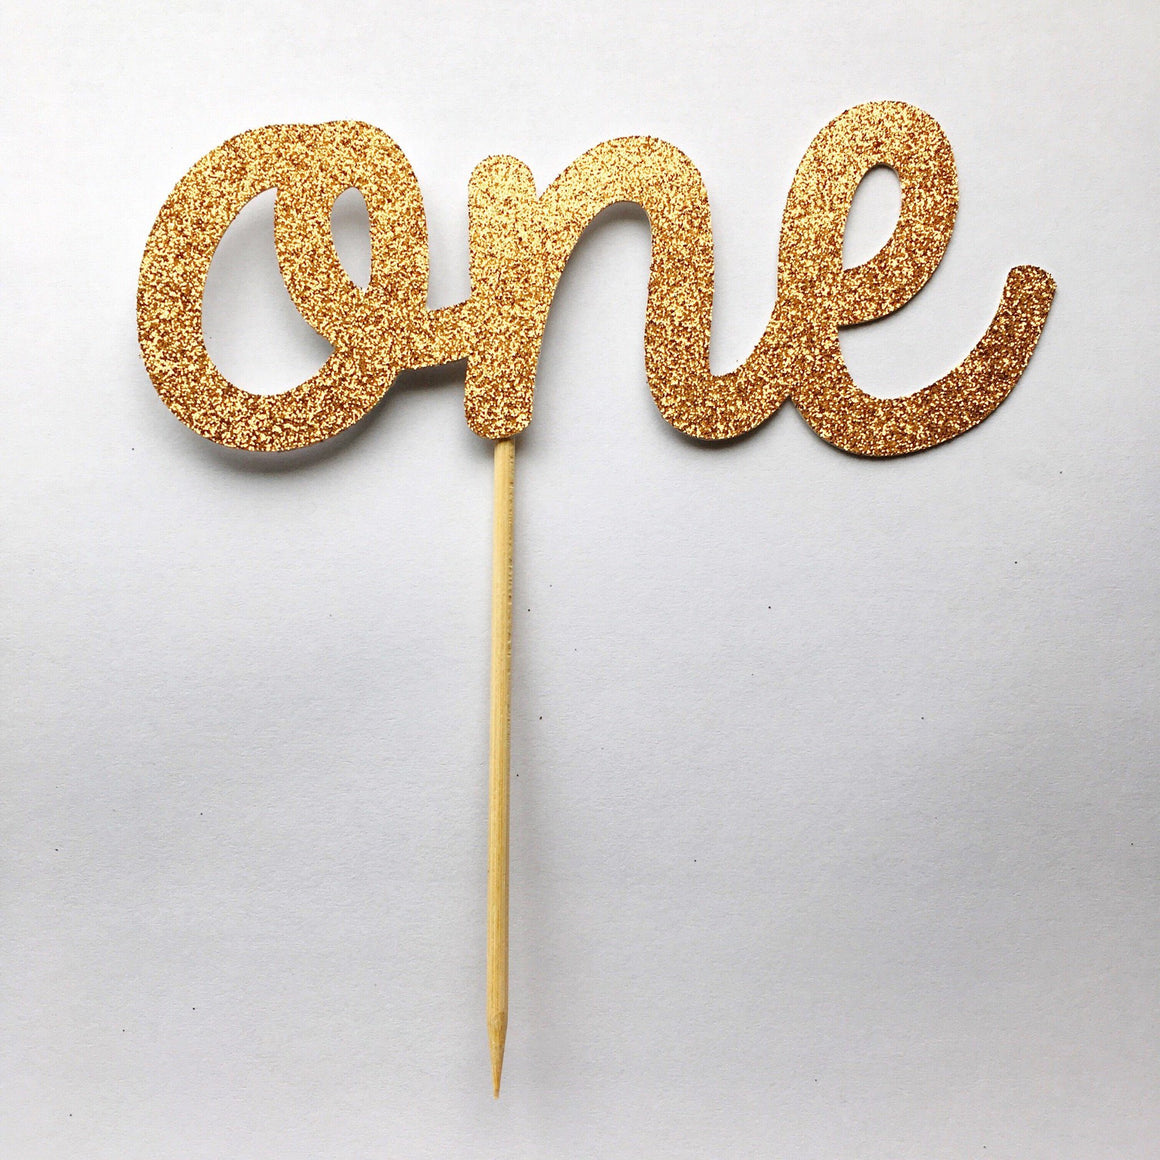 CAKE TOPPER - ONE ROSE GOLD GLITTER